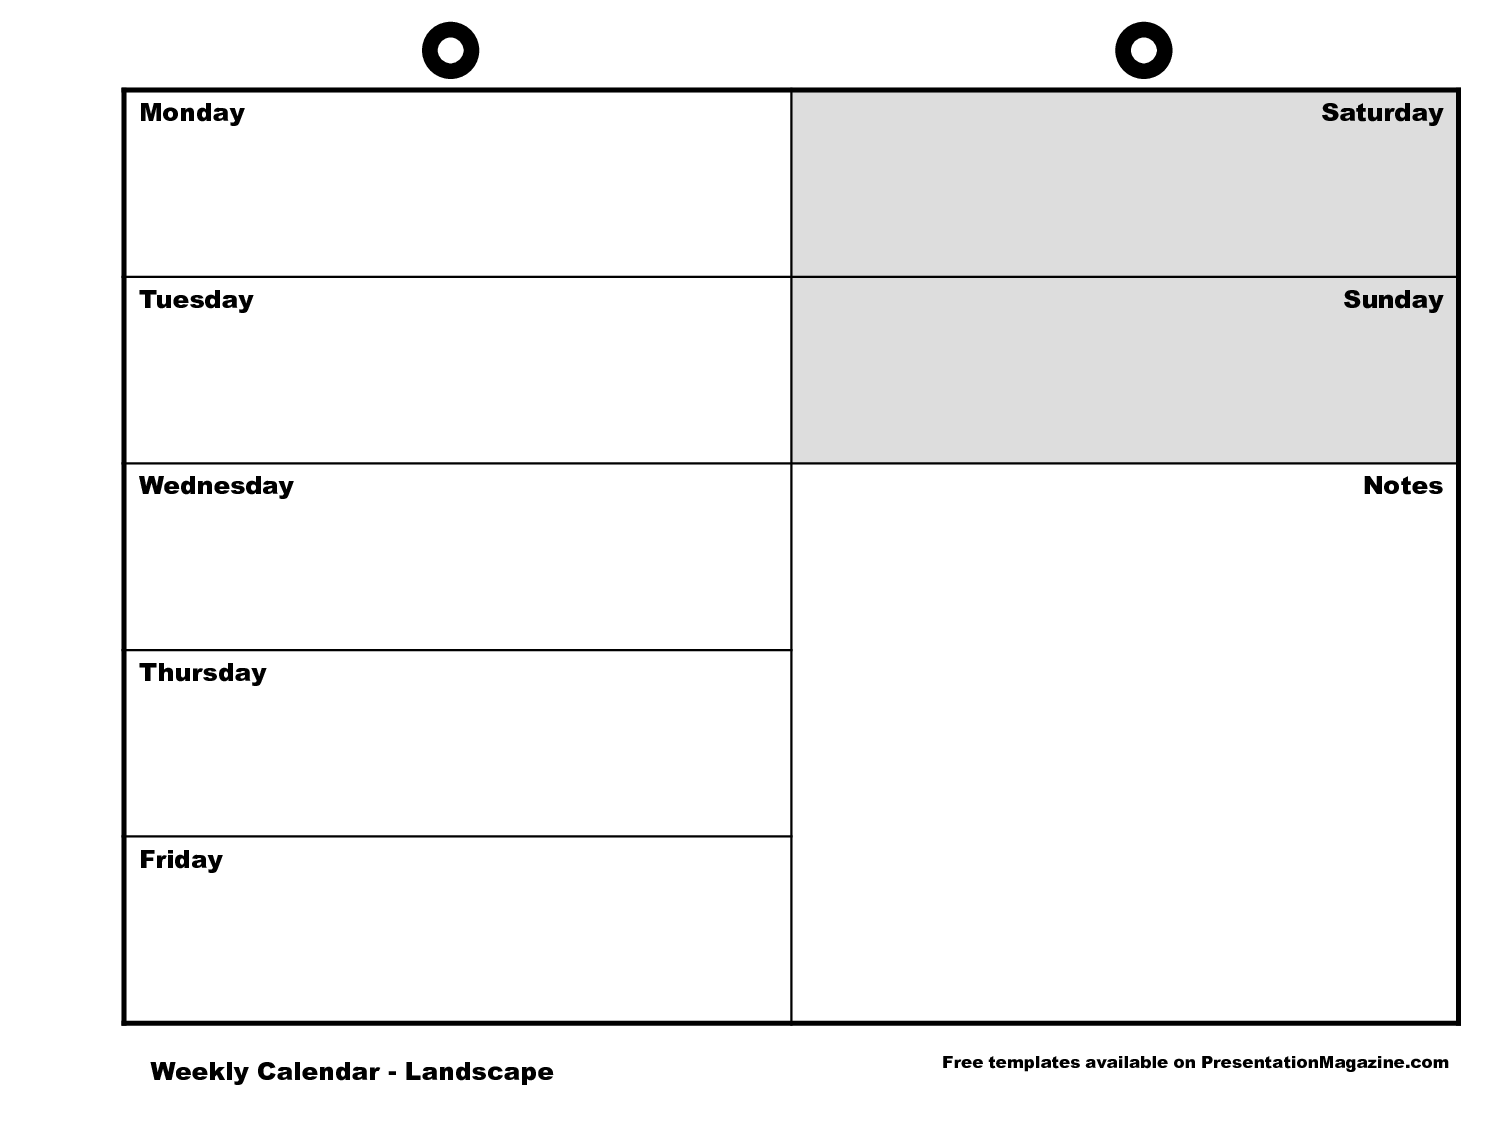 saturday to friday calendar template - monday through sunday calendar template 2016 calendar